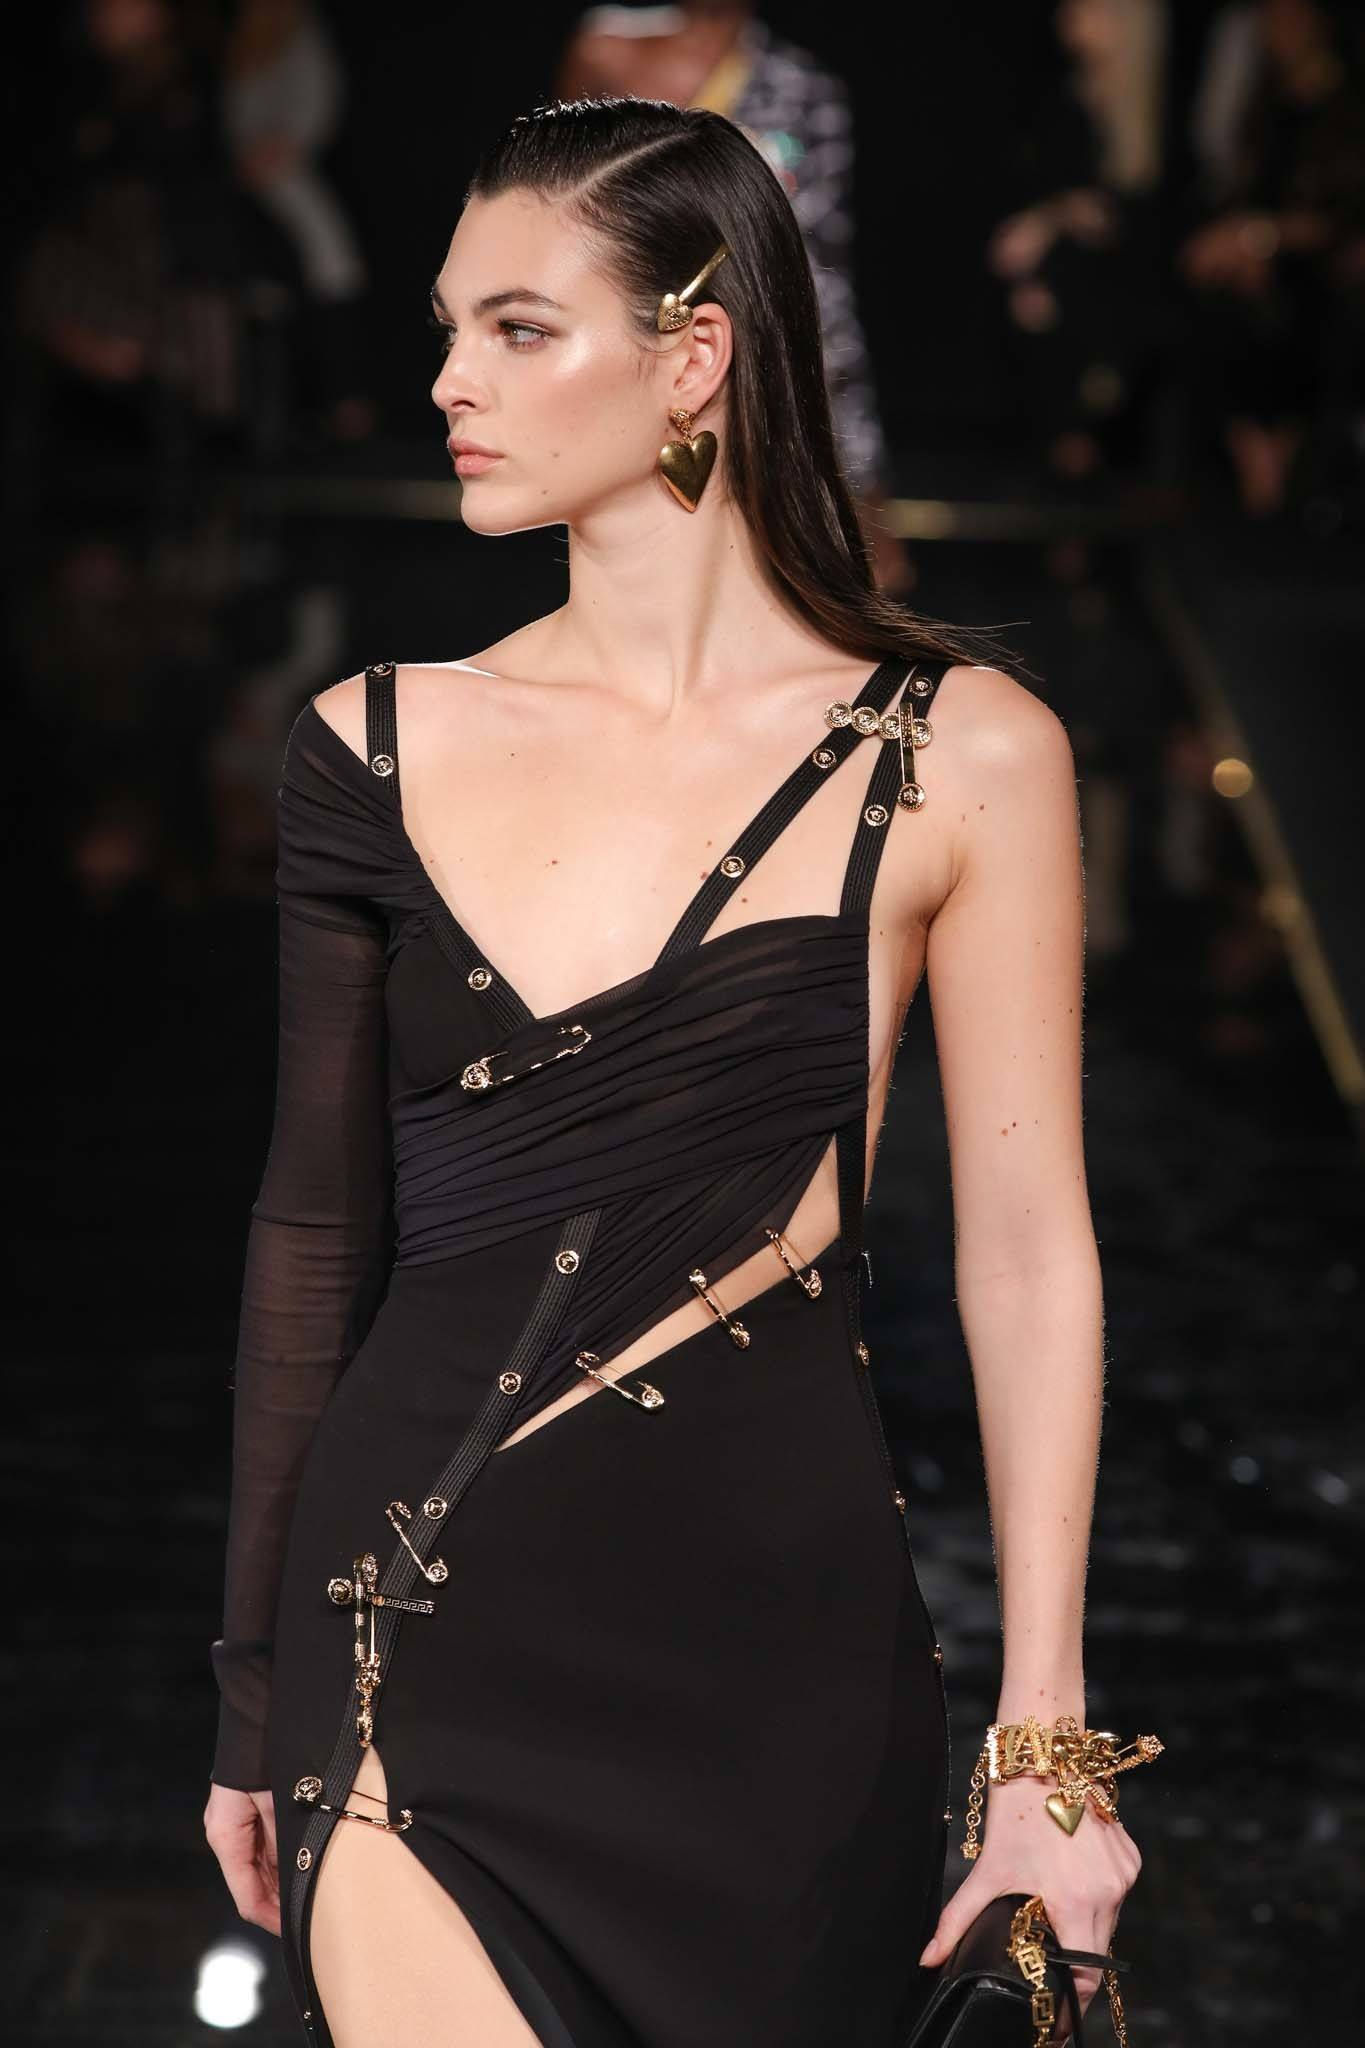 2019 Hair accessories: Model on the runway with dark brown hair with '90s hair slides in it, wearing all black on the Versace runway